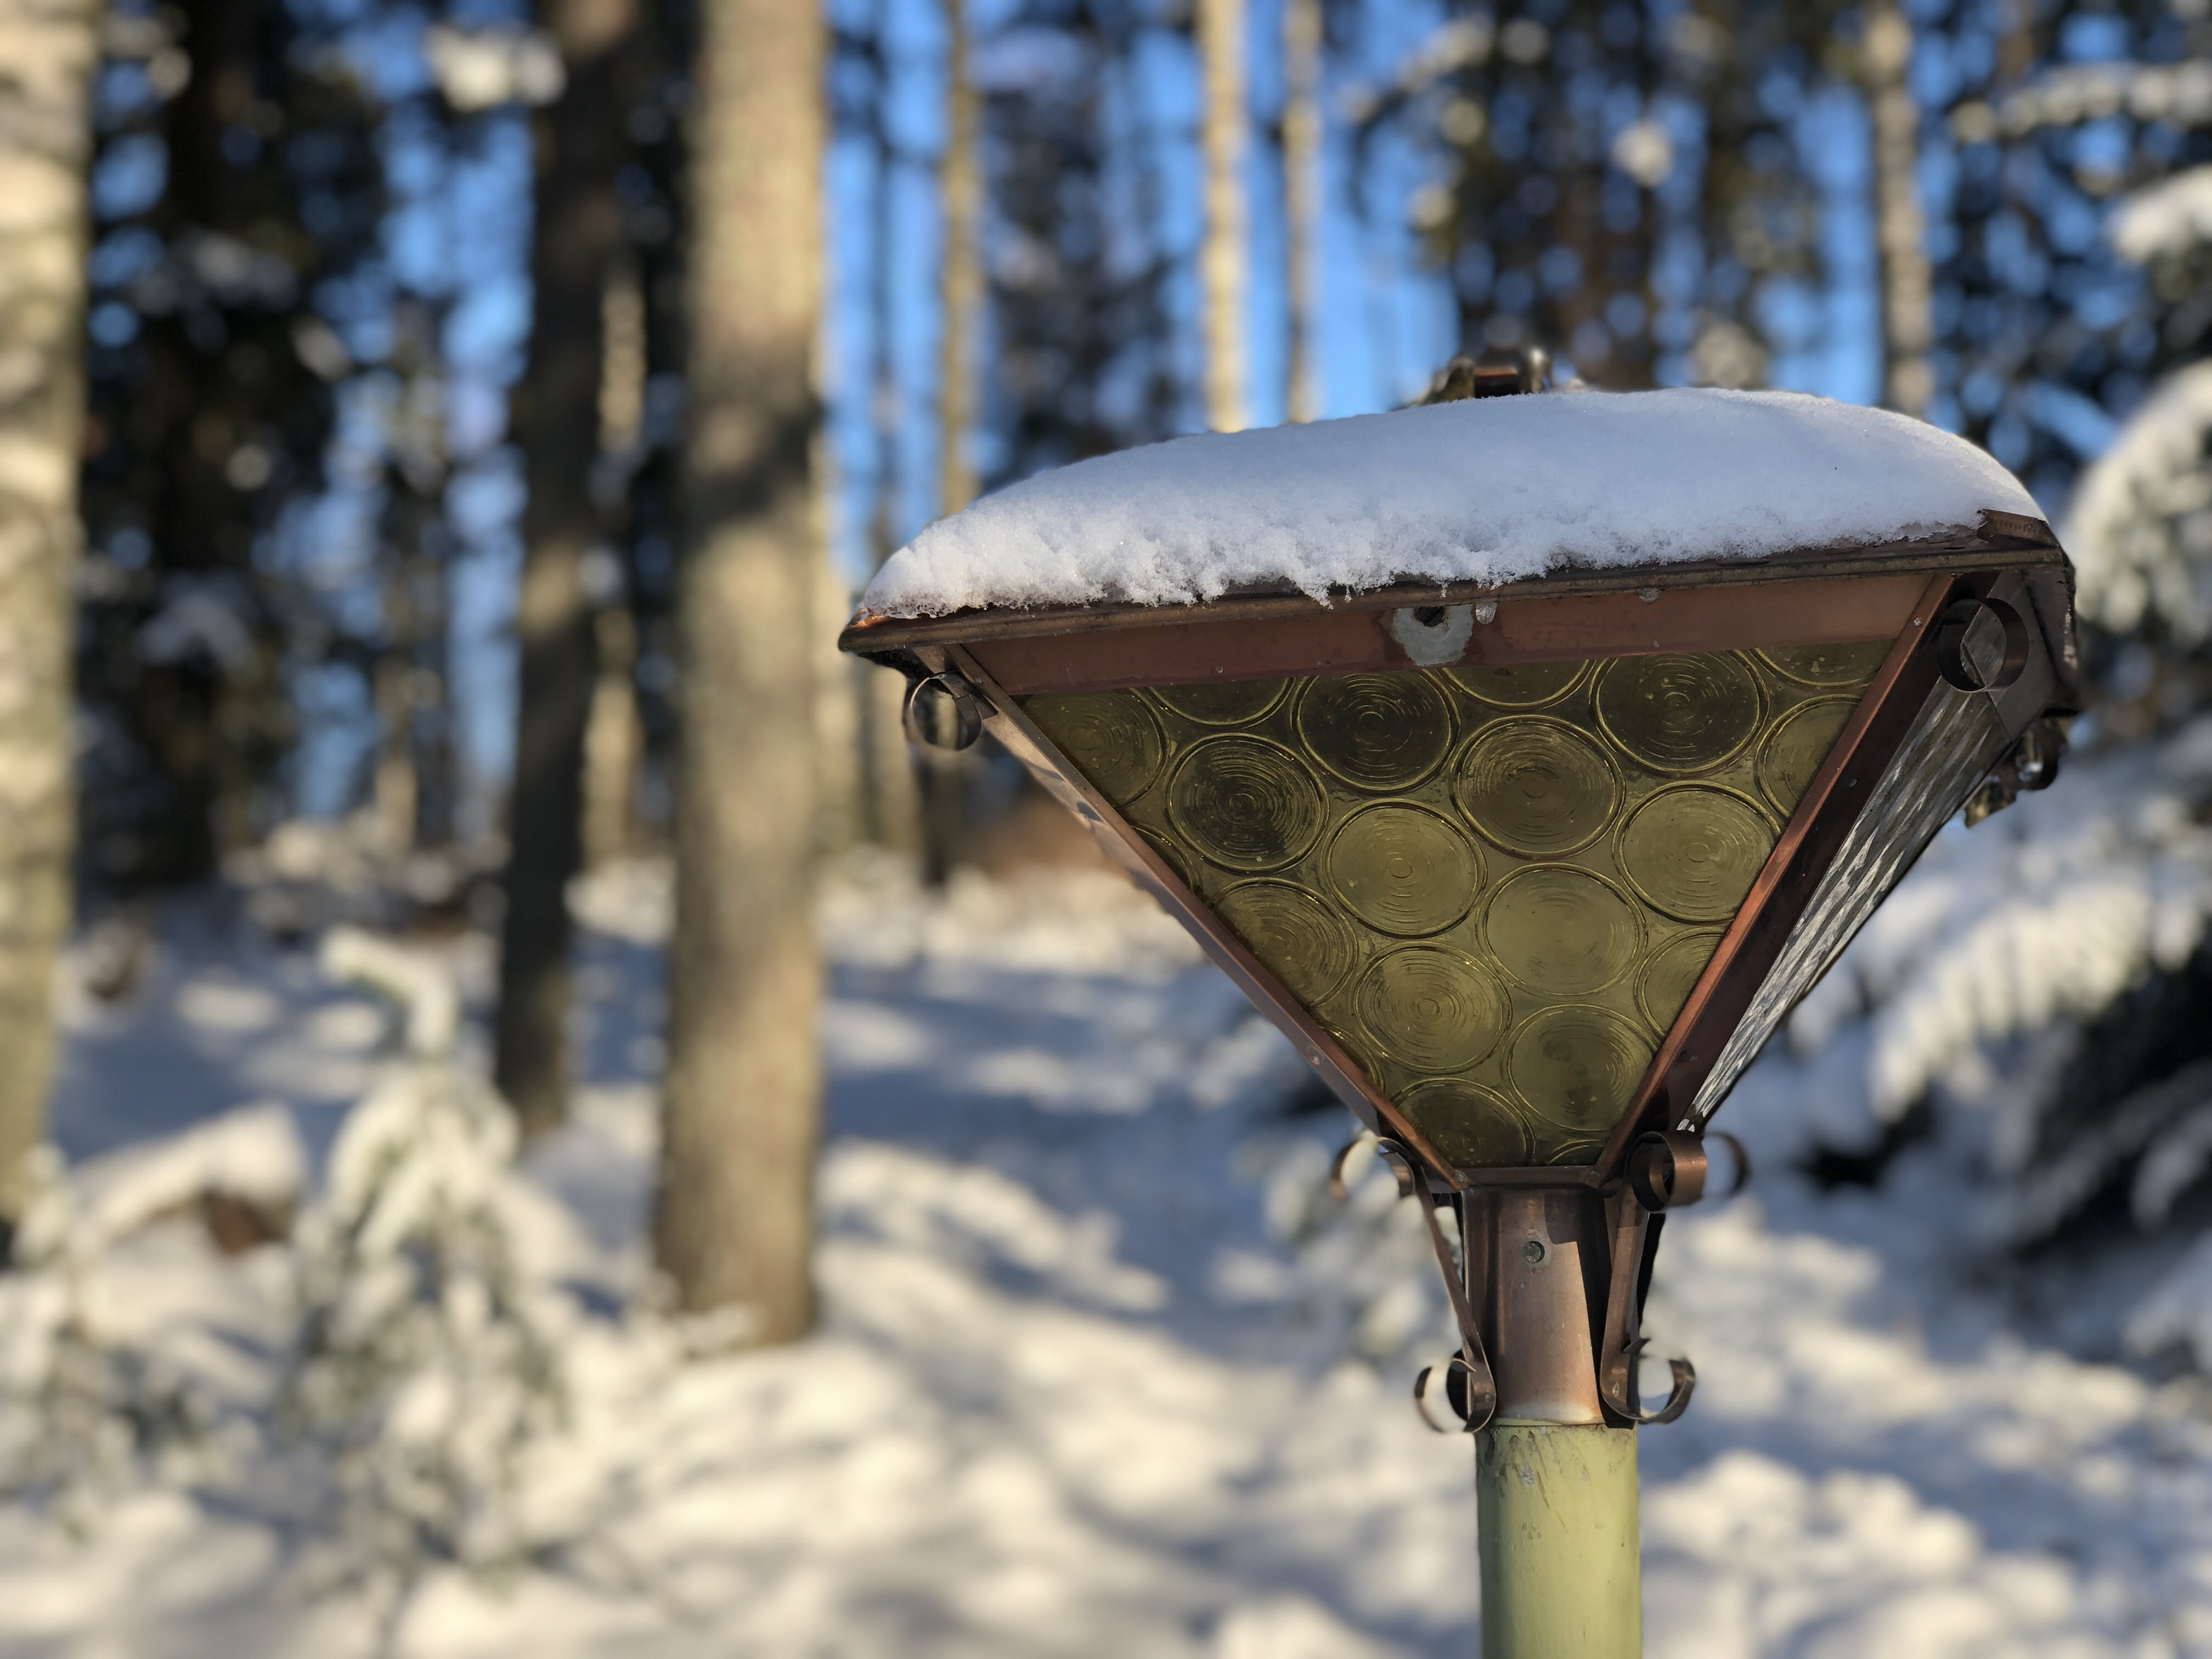 Free stock photo of snow, trees, lamp, forrest